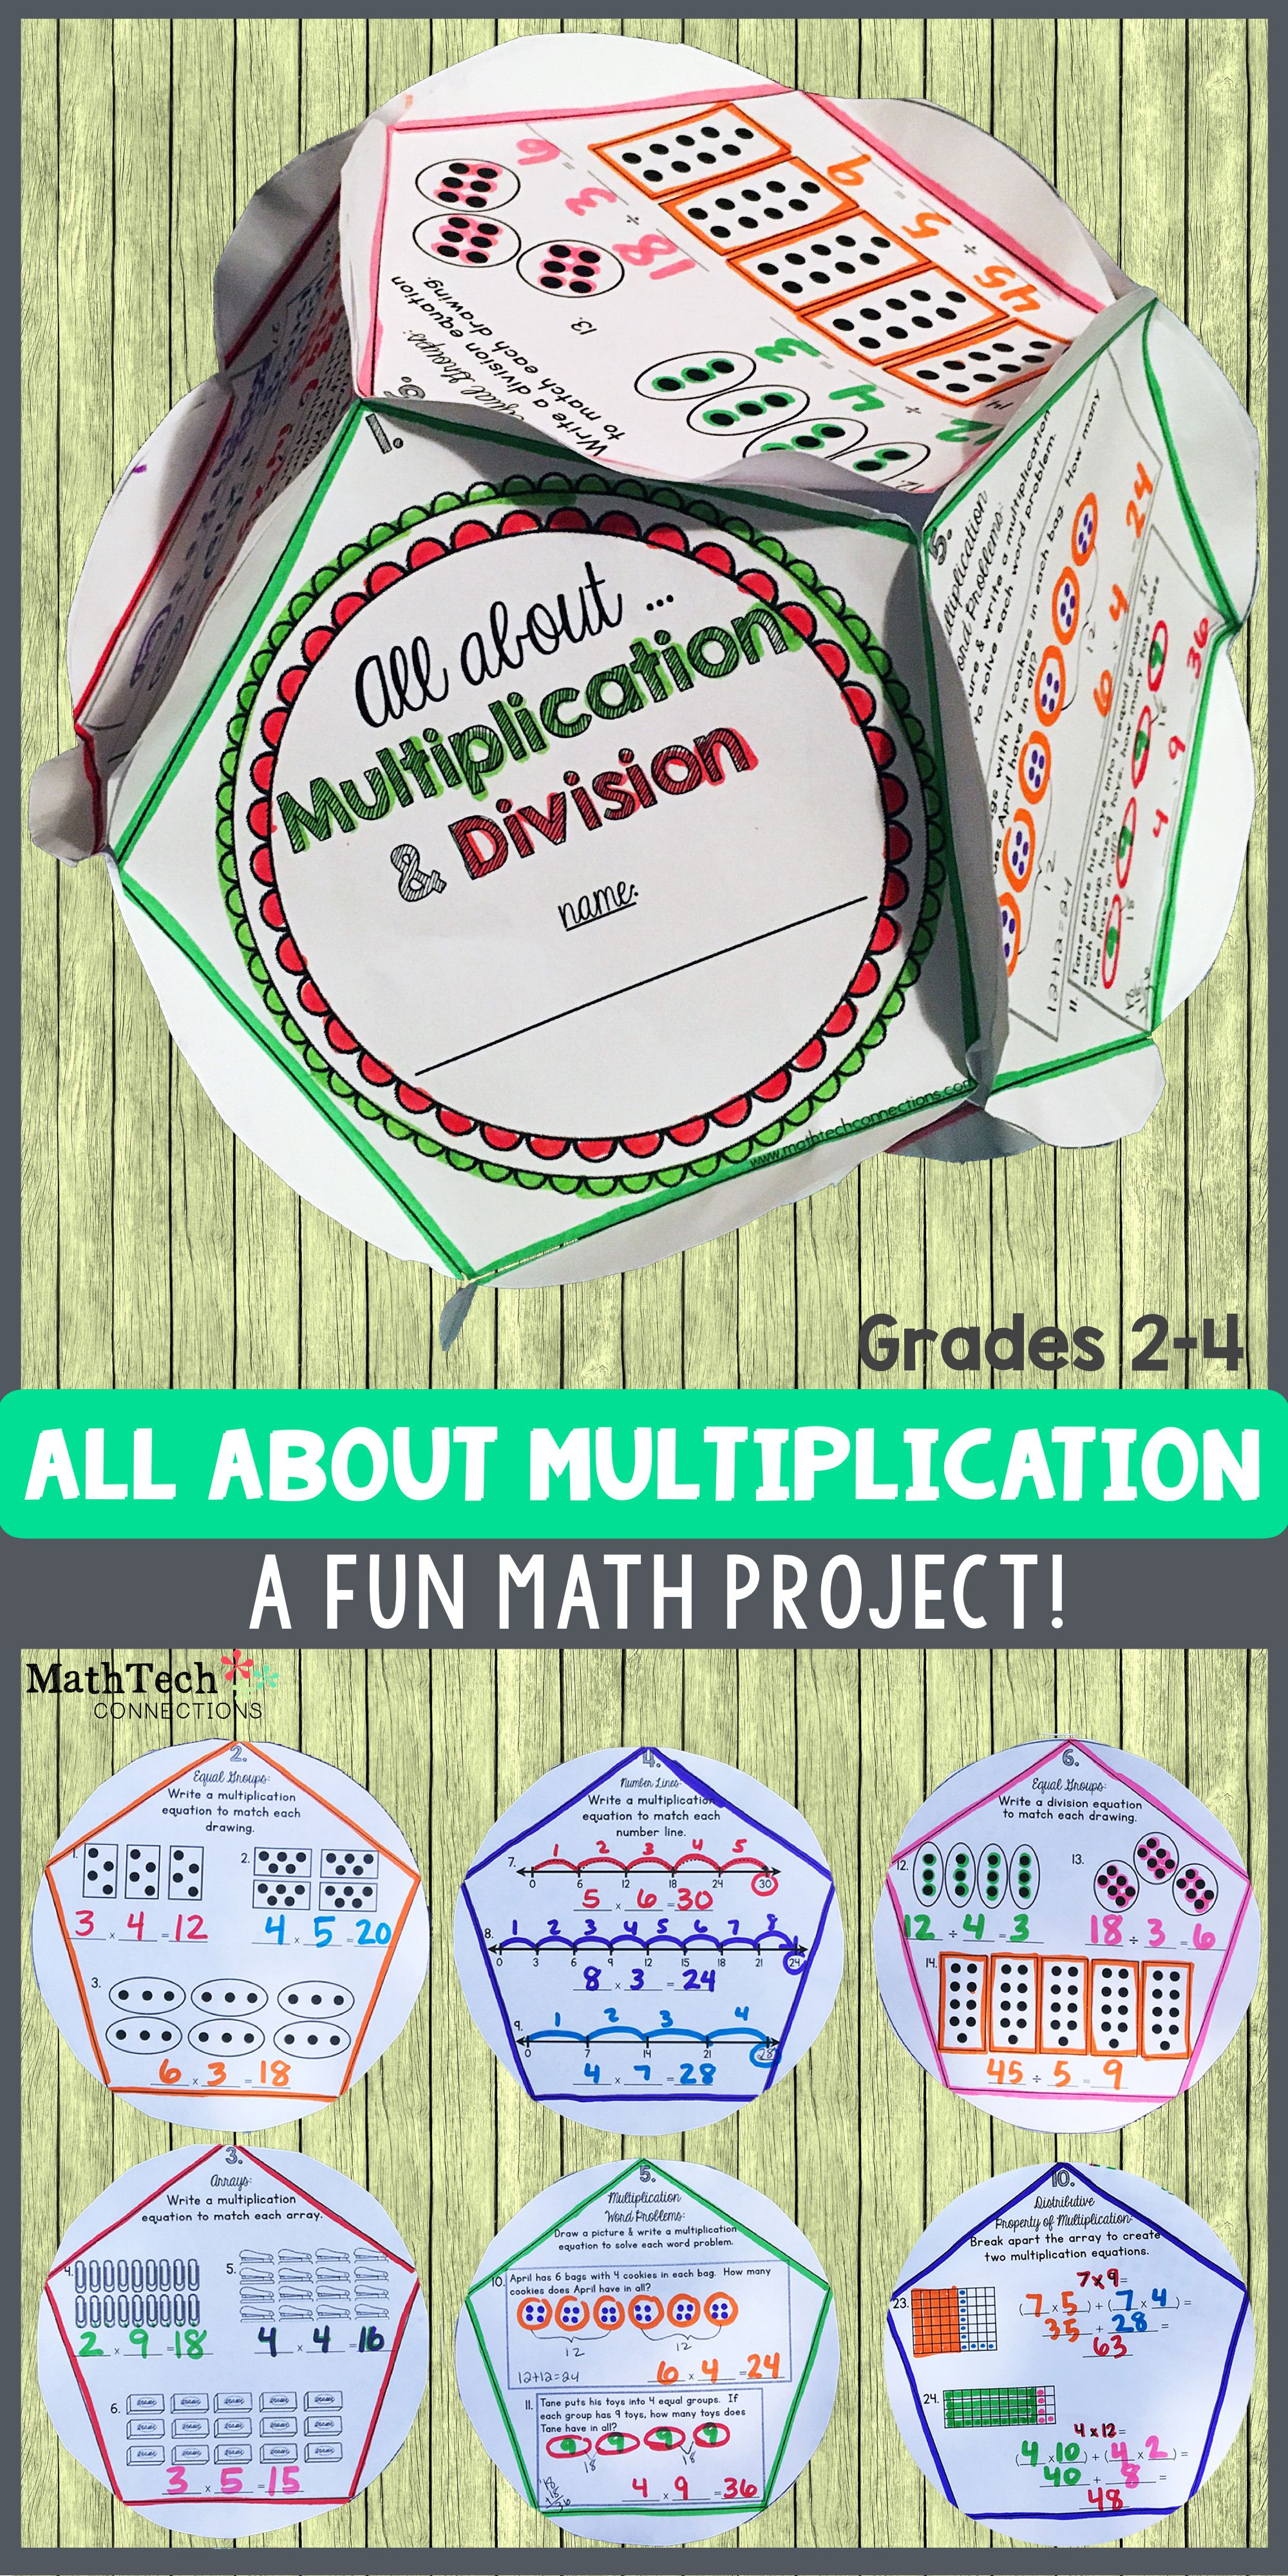 Multiplication & Division - Dodecahedron Project | Pinterest ...